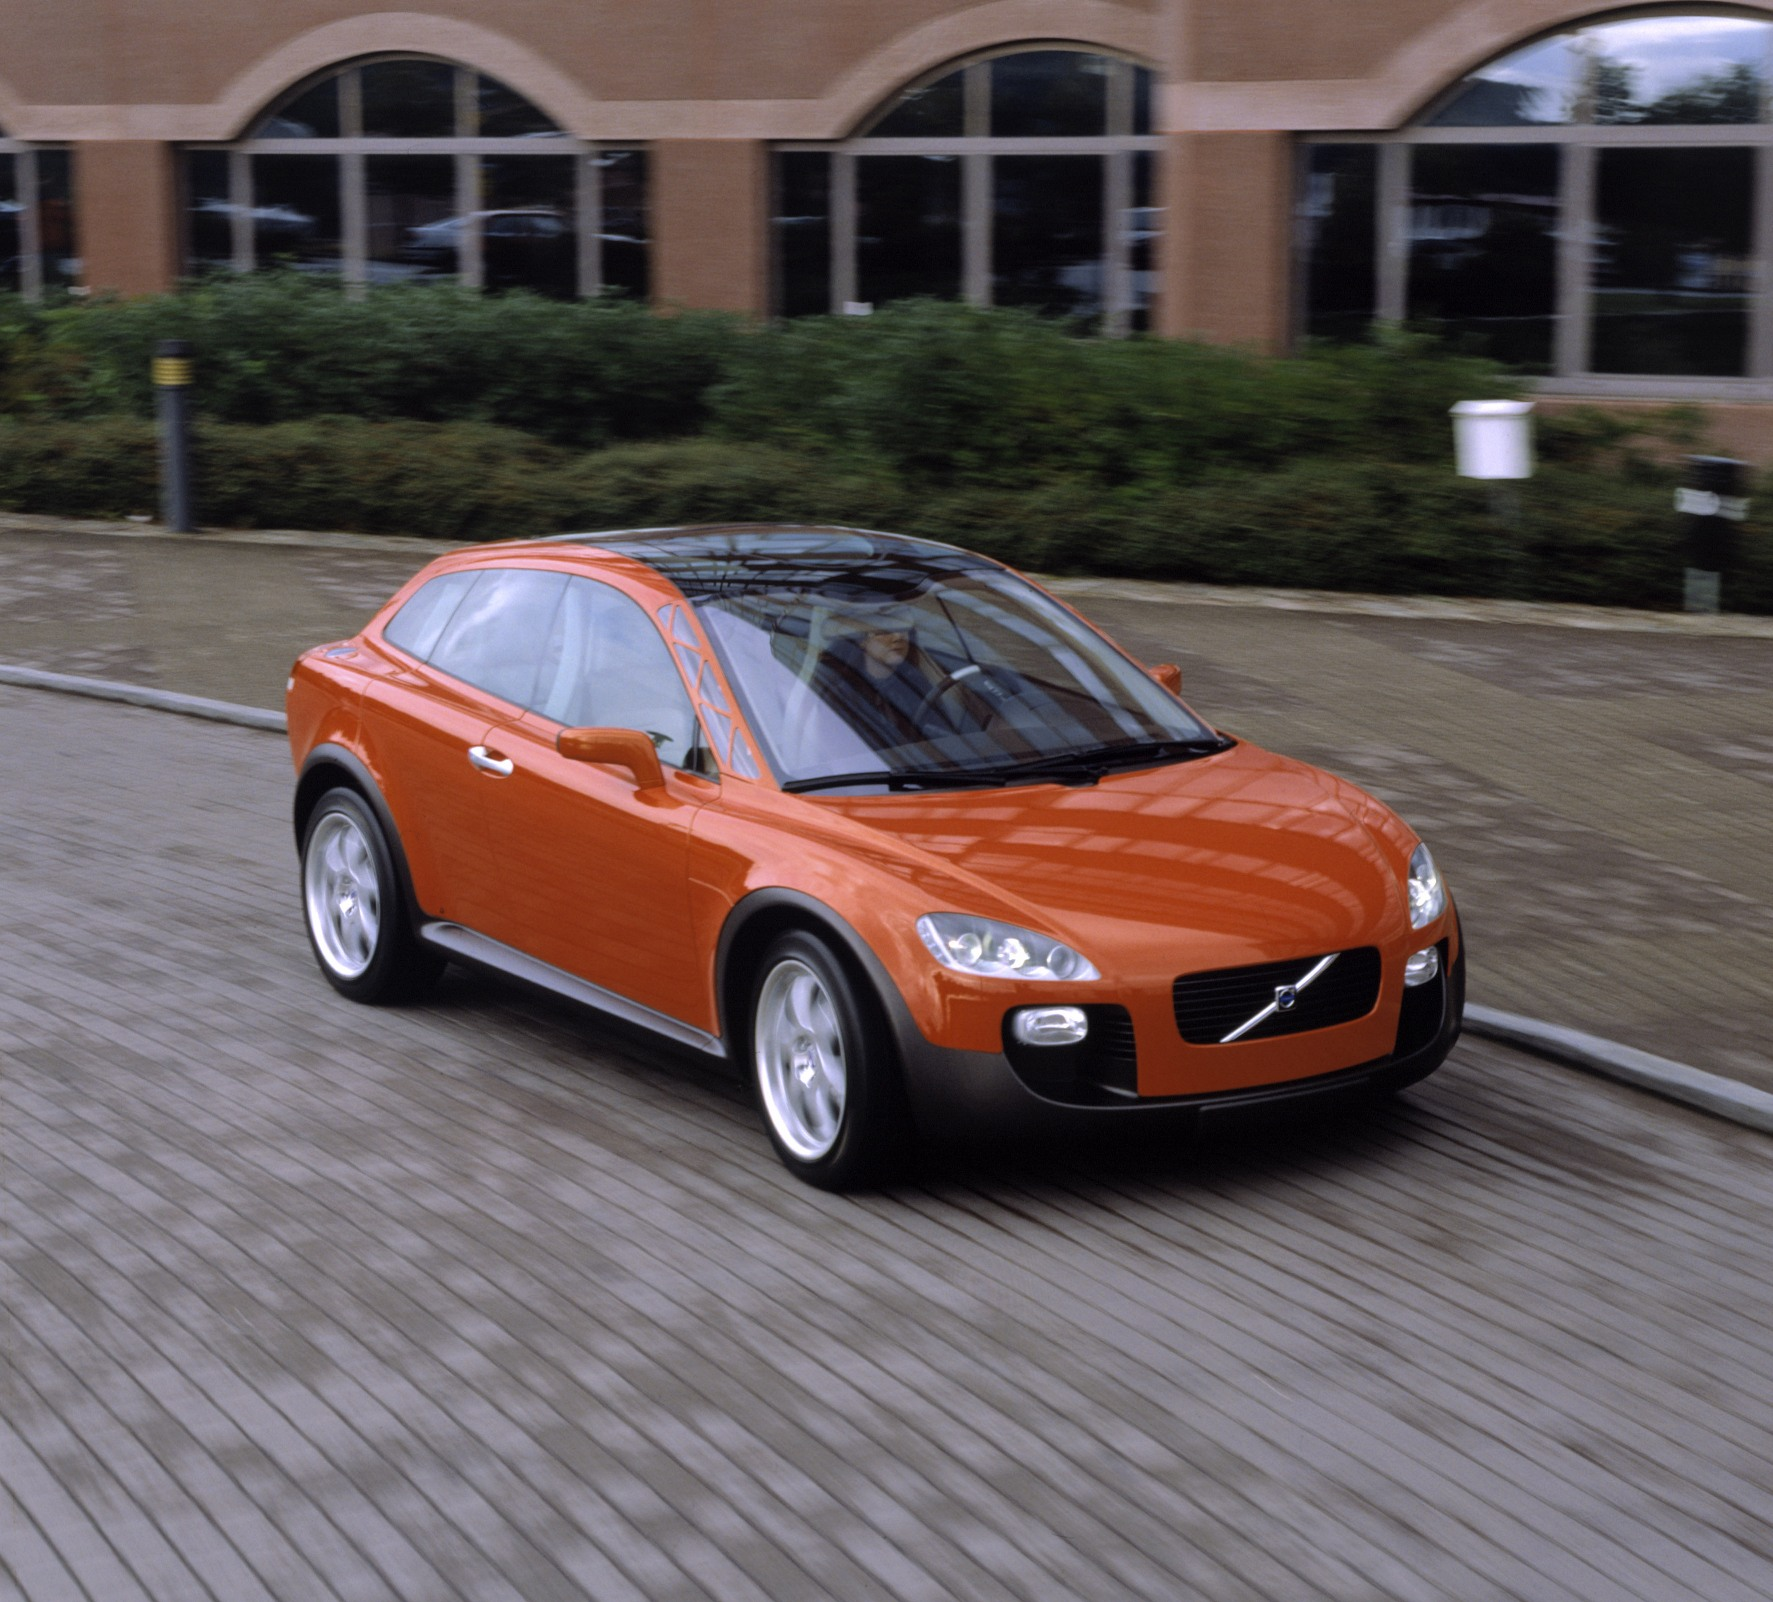 Volvo C30 Rendered with S90 Front Must Be Built - autoevolution